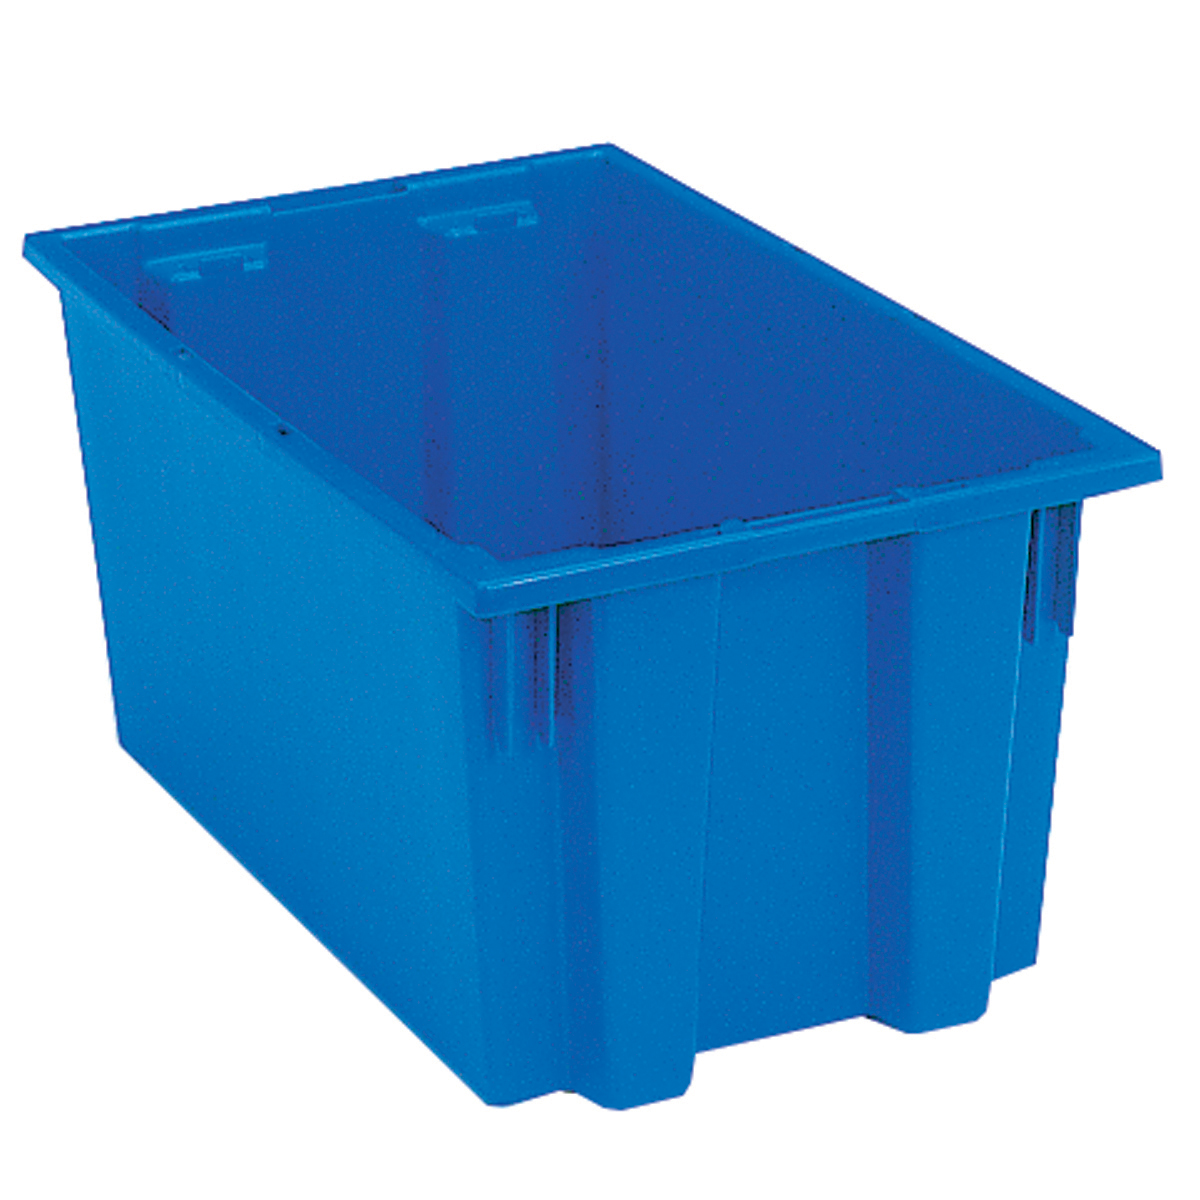 Nest & Stack Tote 18 x 11, 9, Blue (35185BLUE).  This item sold in carton quantities of 6.